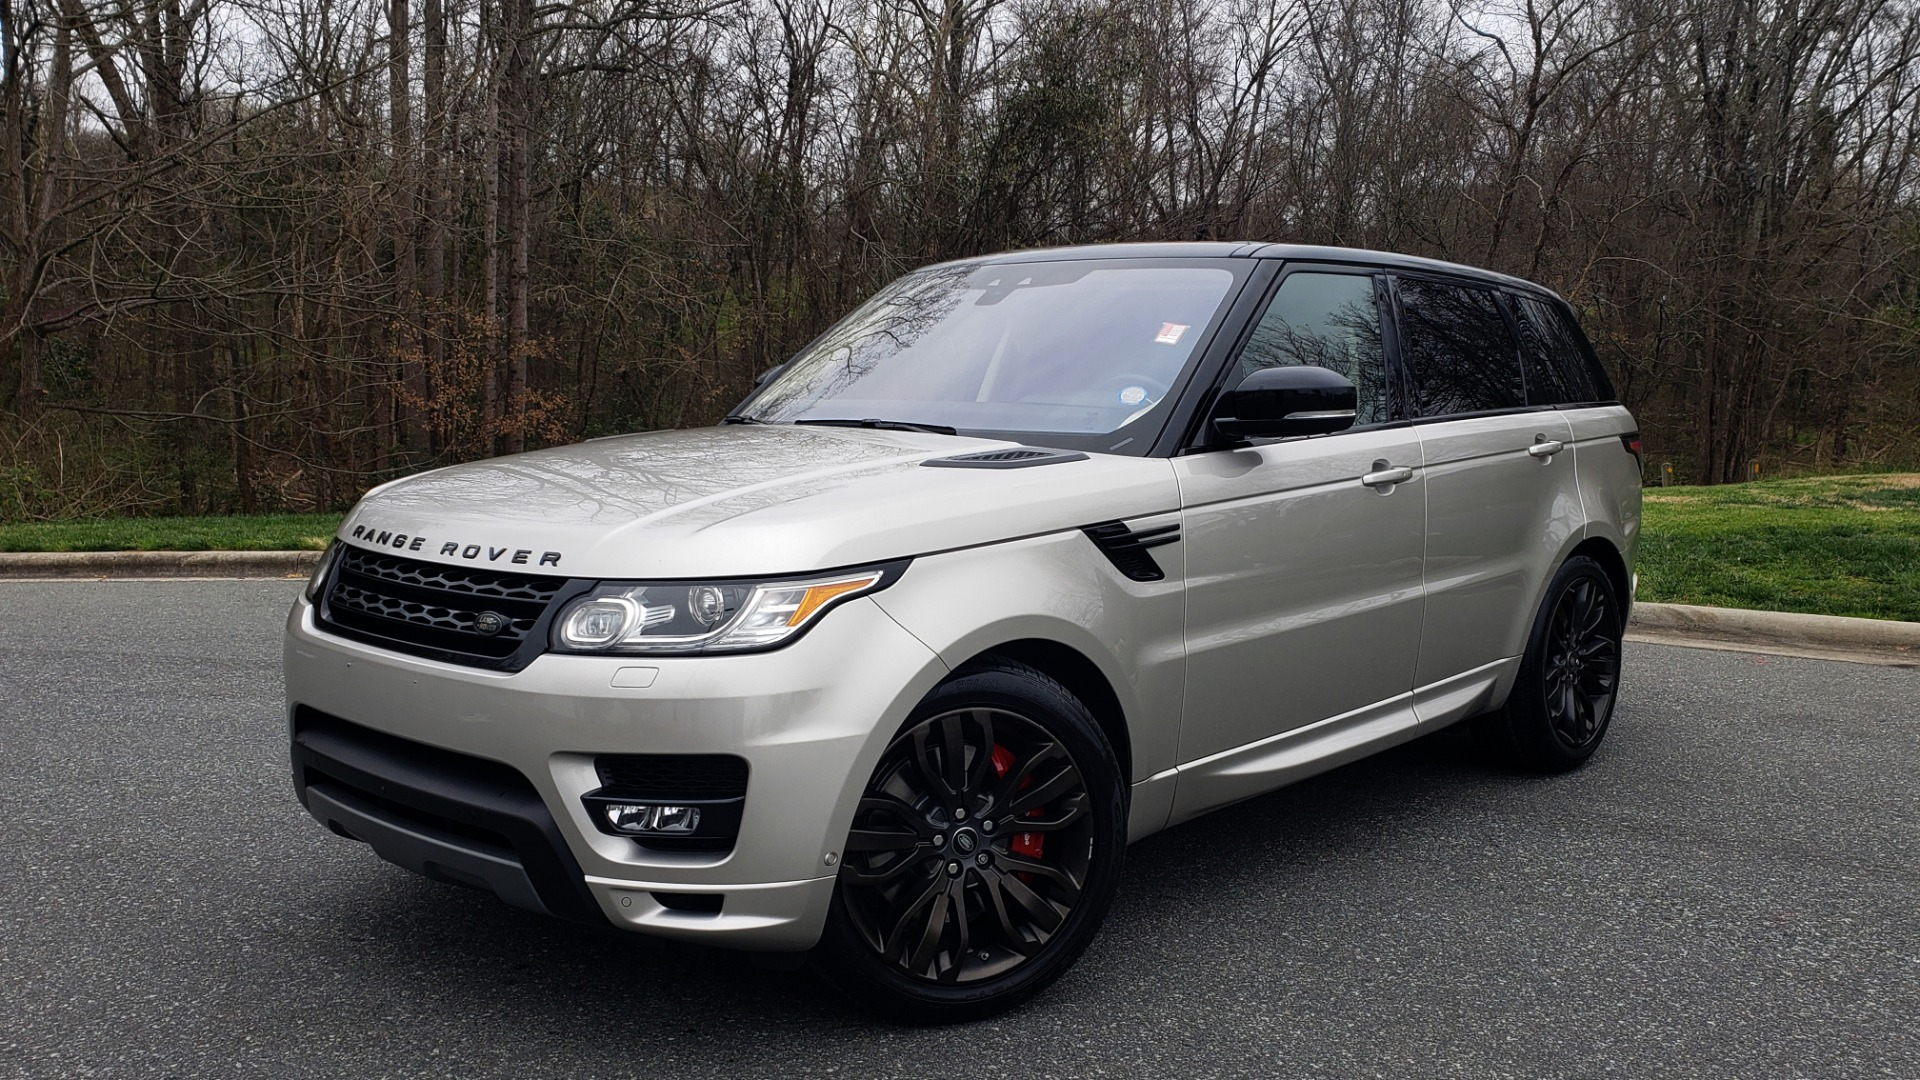 Used 2017 Land Rover RANGE ROVER SPORT HSE DYNAMIC / SC V6 / NAV / PANO-ROOF / REARVIEW for sale Sold at Formula Imports in Charlotte NC 28227 1